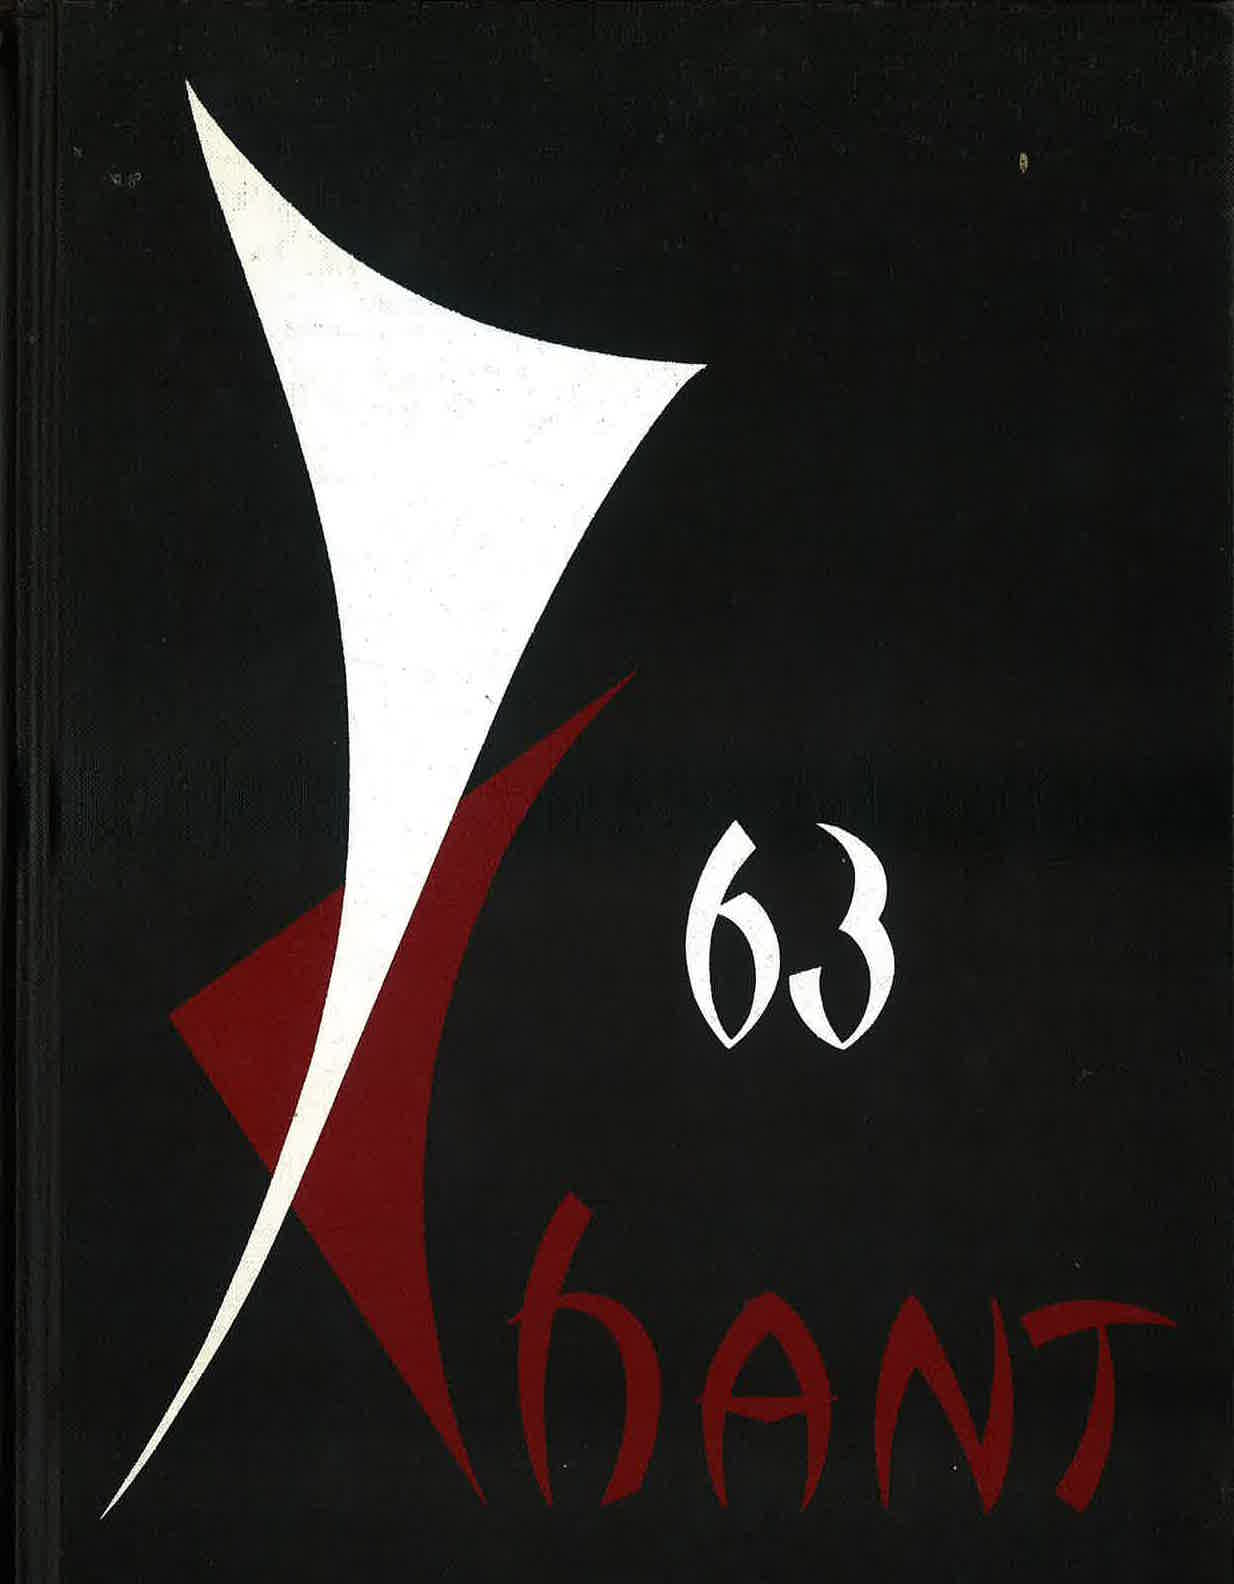 1963_Yearbook_Cover.jpg